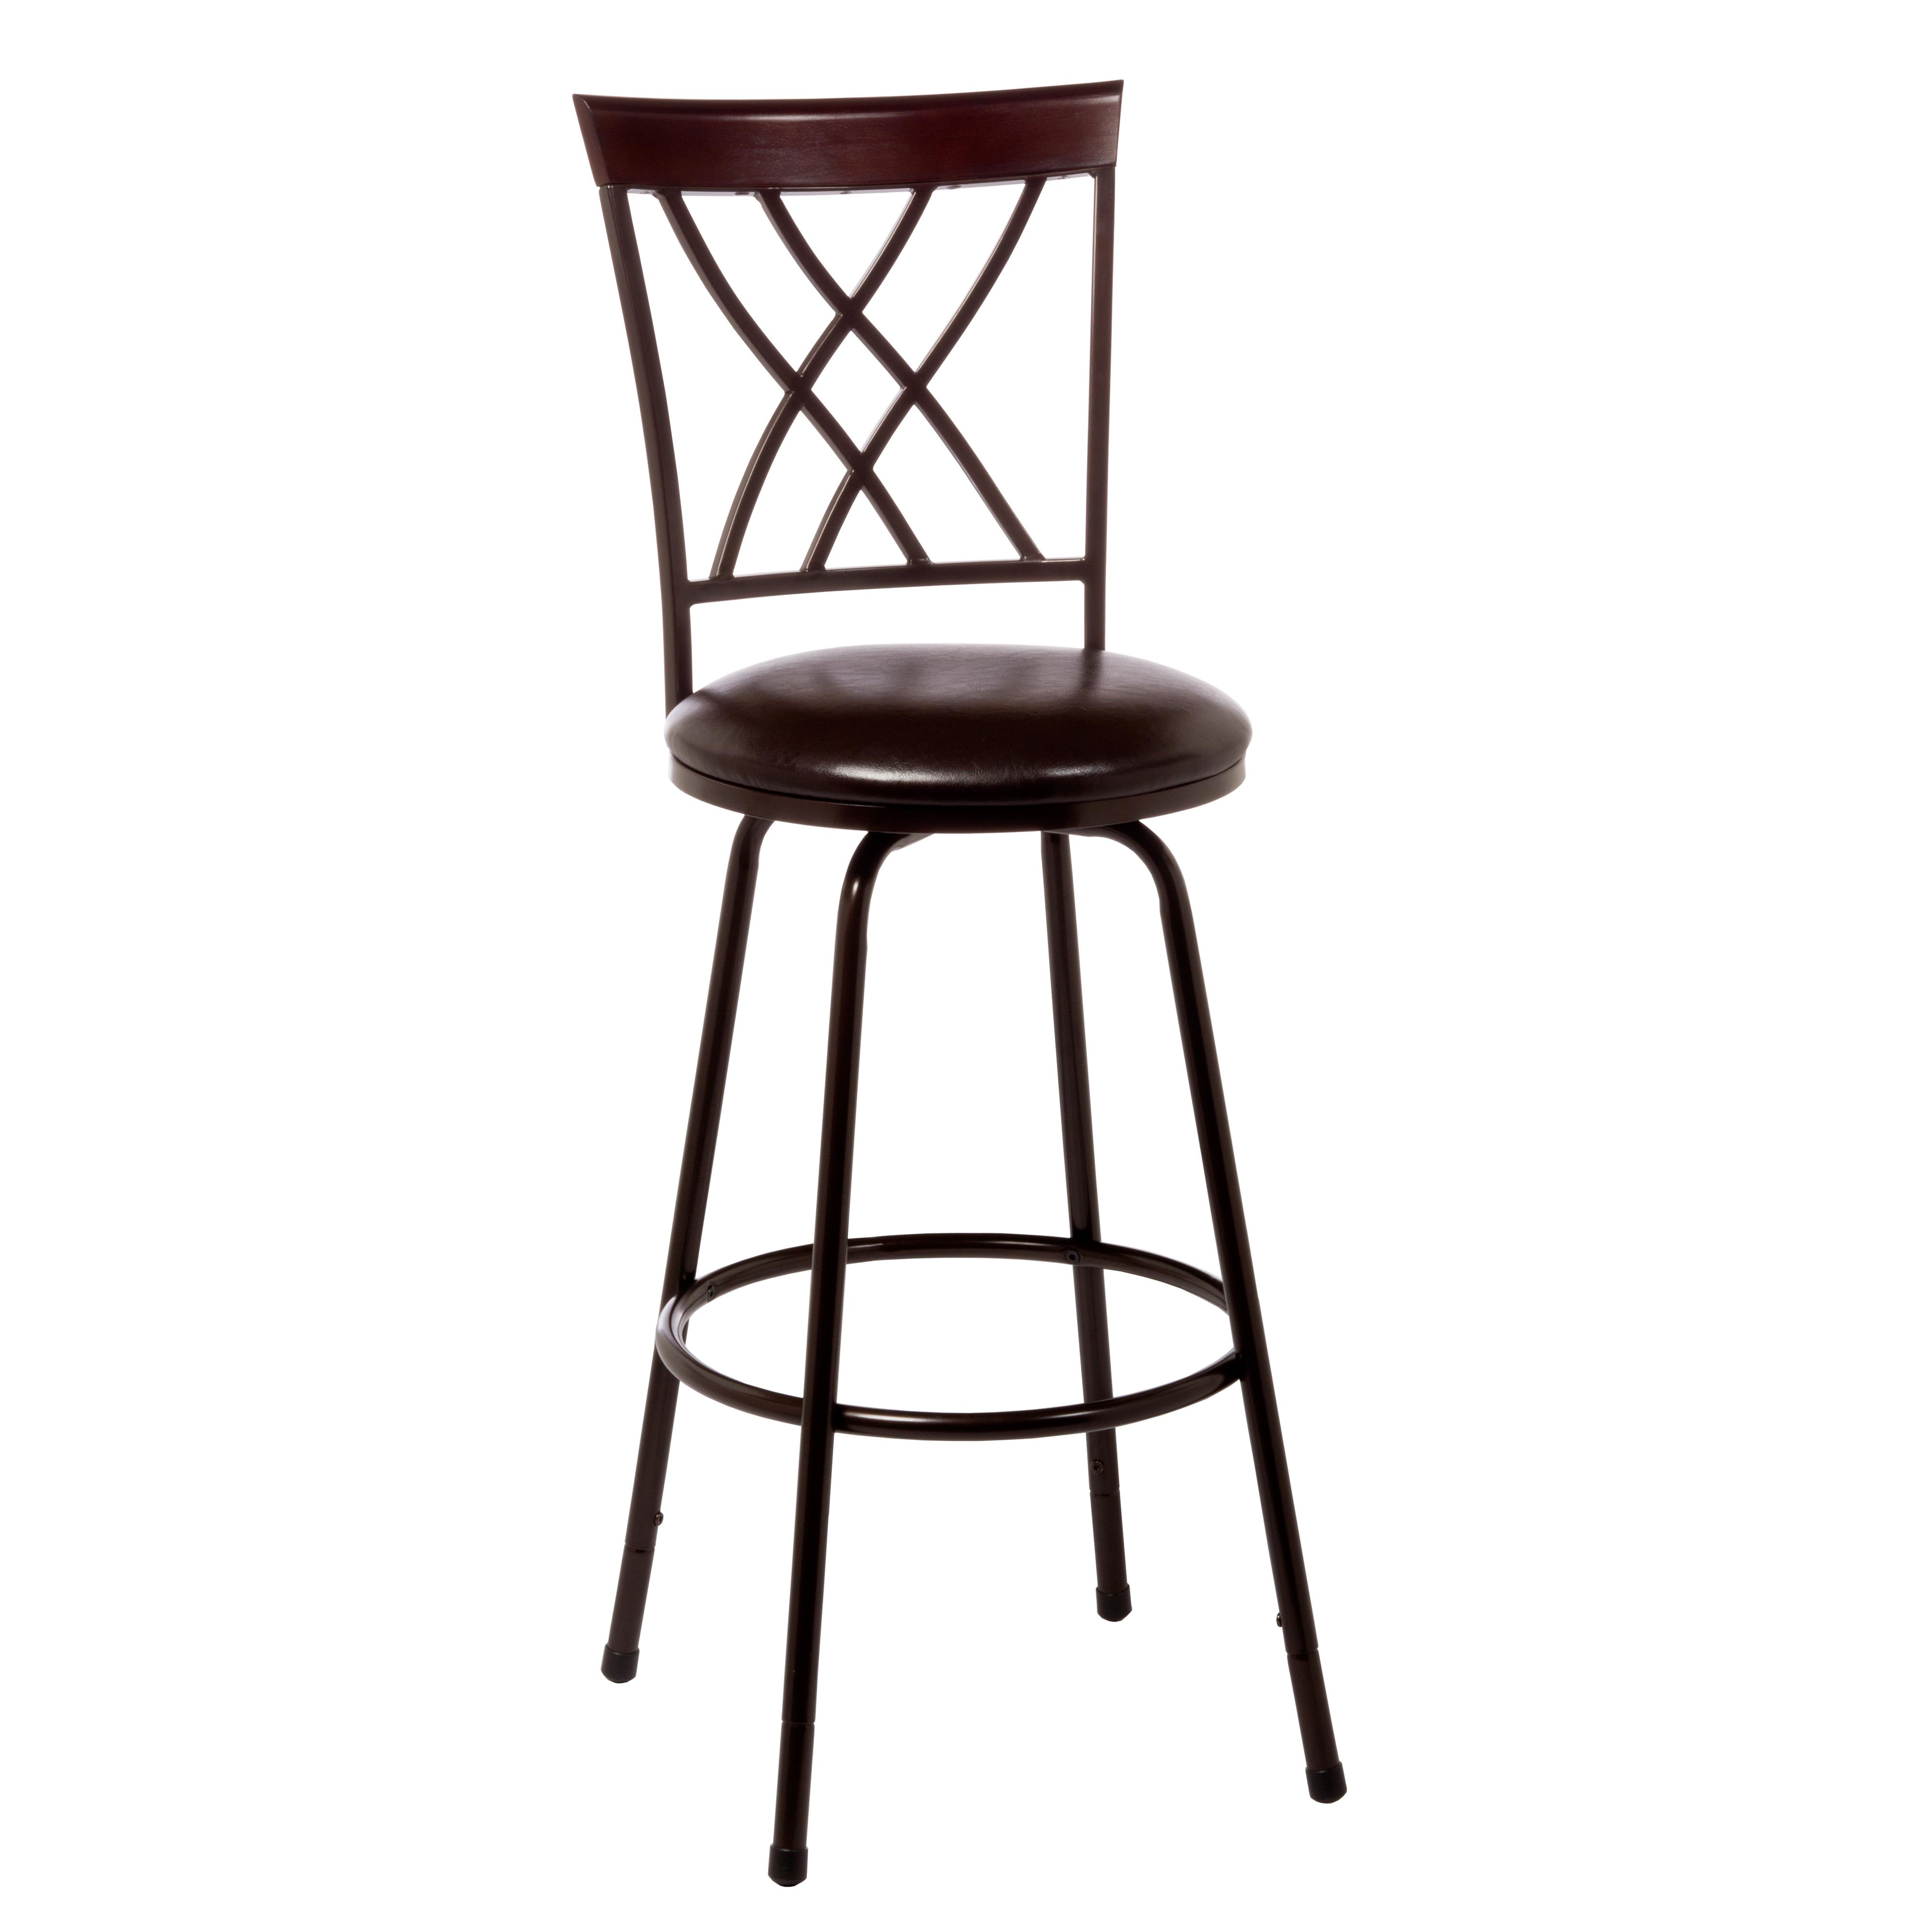 Hillsdale Metal Stools Northland Swivel Counter/Bar Stool - Item Number: 5350-831